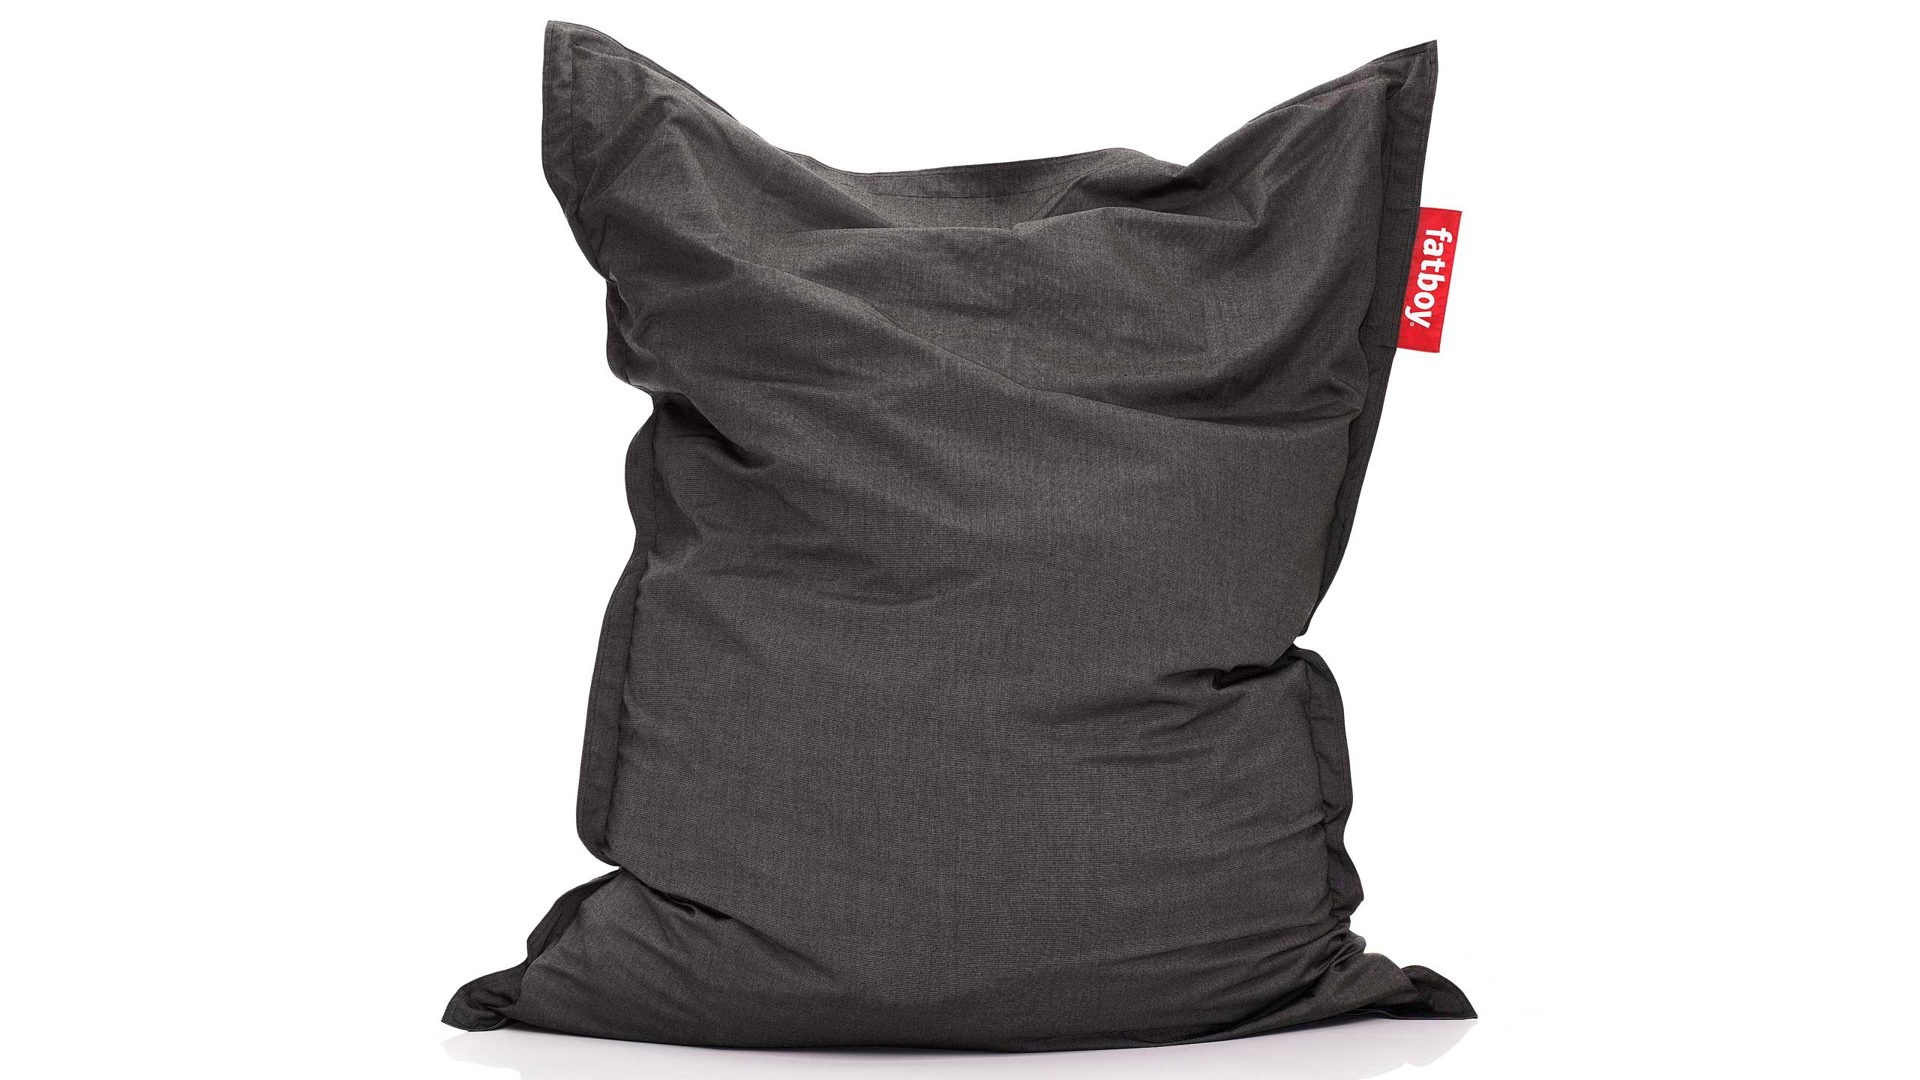 Outdoorsitzsack Fatboy Sitzsack Original Outdoor Charcoal Anthrazit 180 X 140 Cm